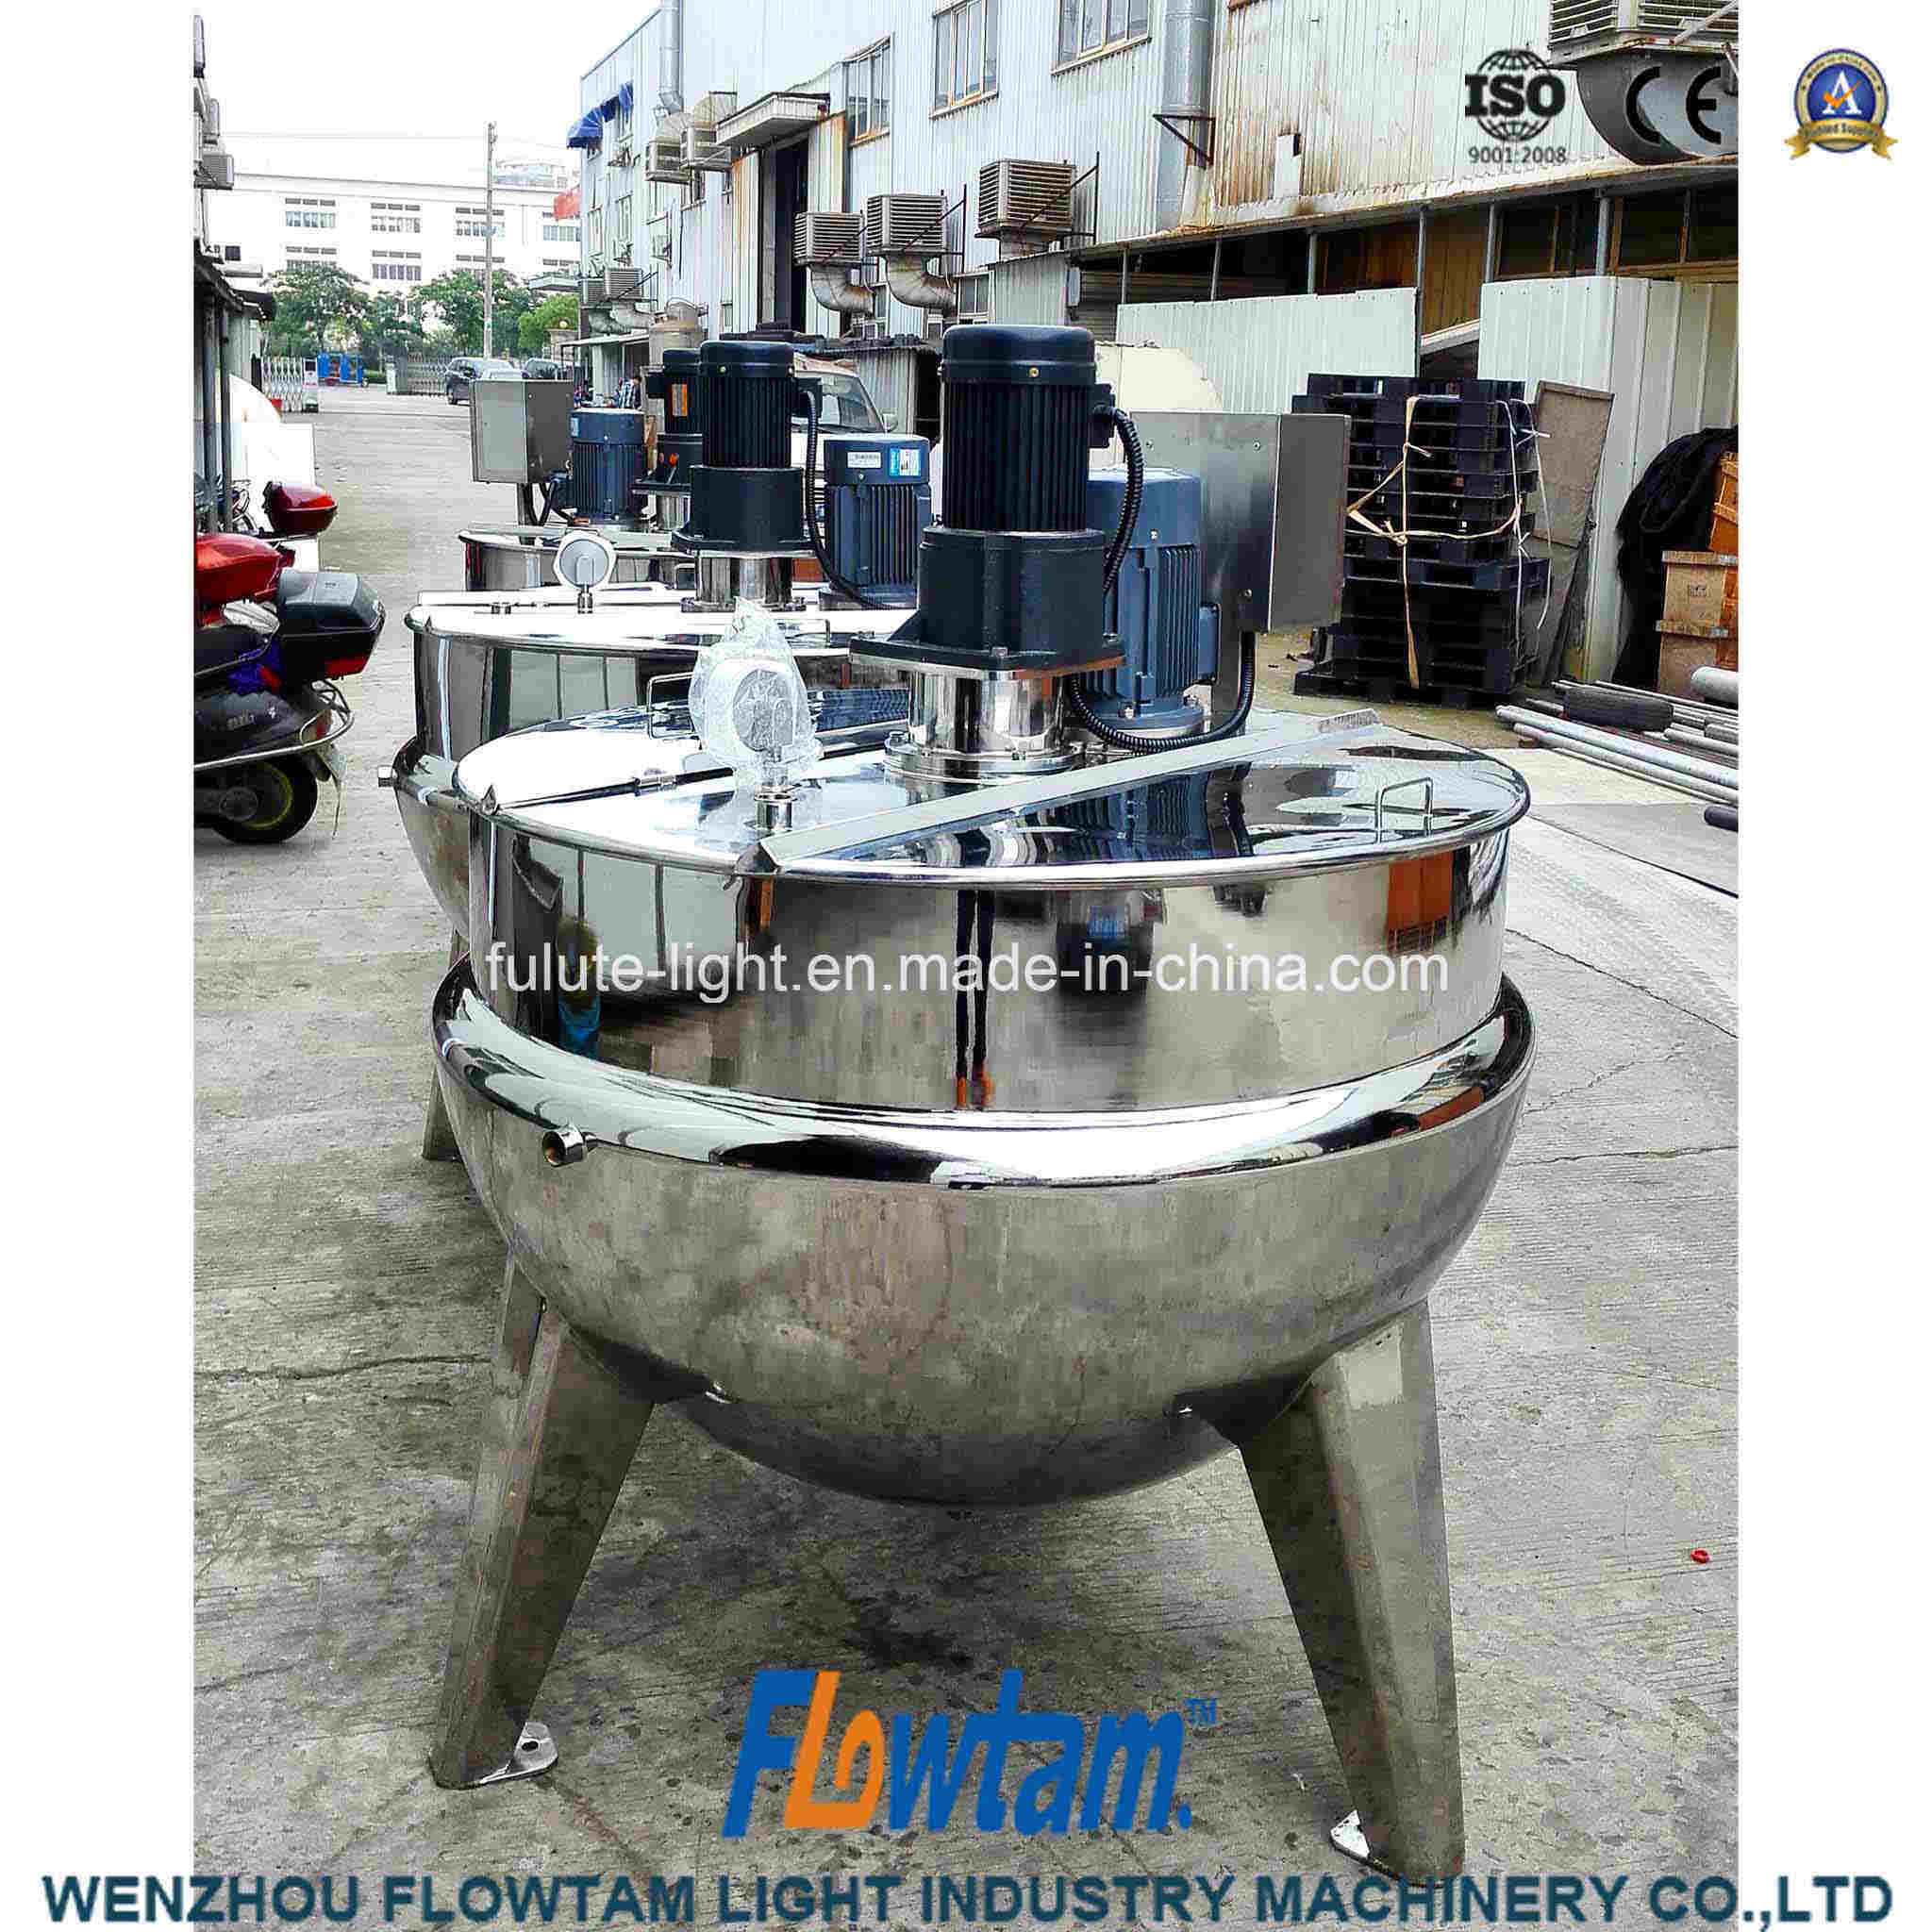 High Standard Double Jacketed Stainless Steel Tilting Electric Heating Kettle